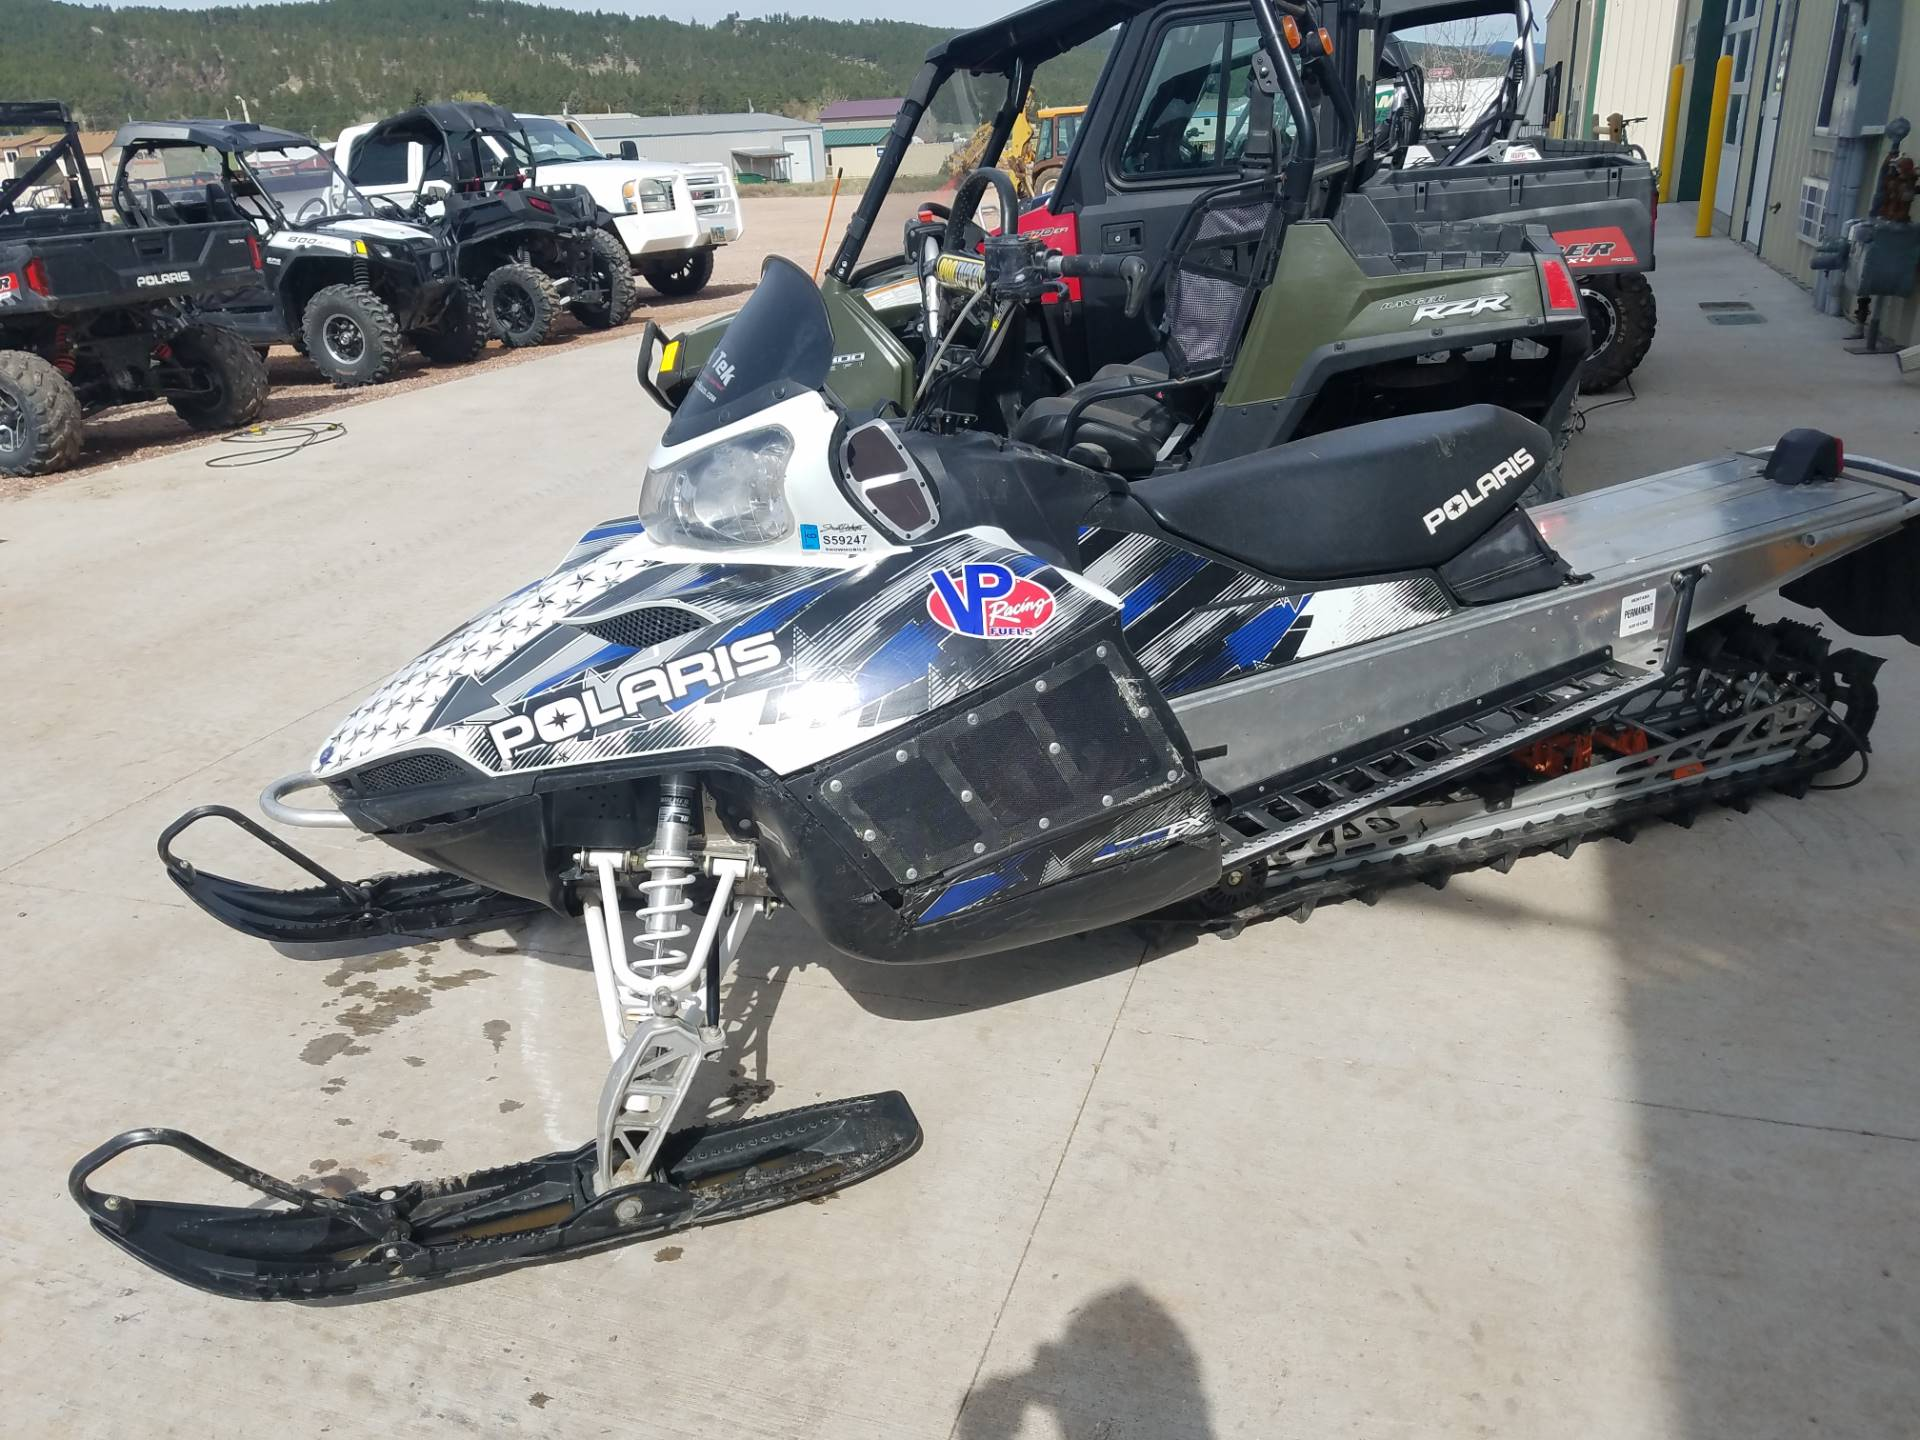 2009 Polaris 800 Dragon RMK 163 in Rapid City, South Dakota